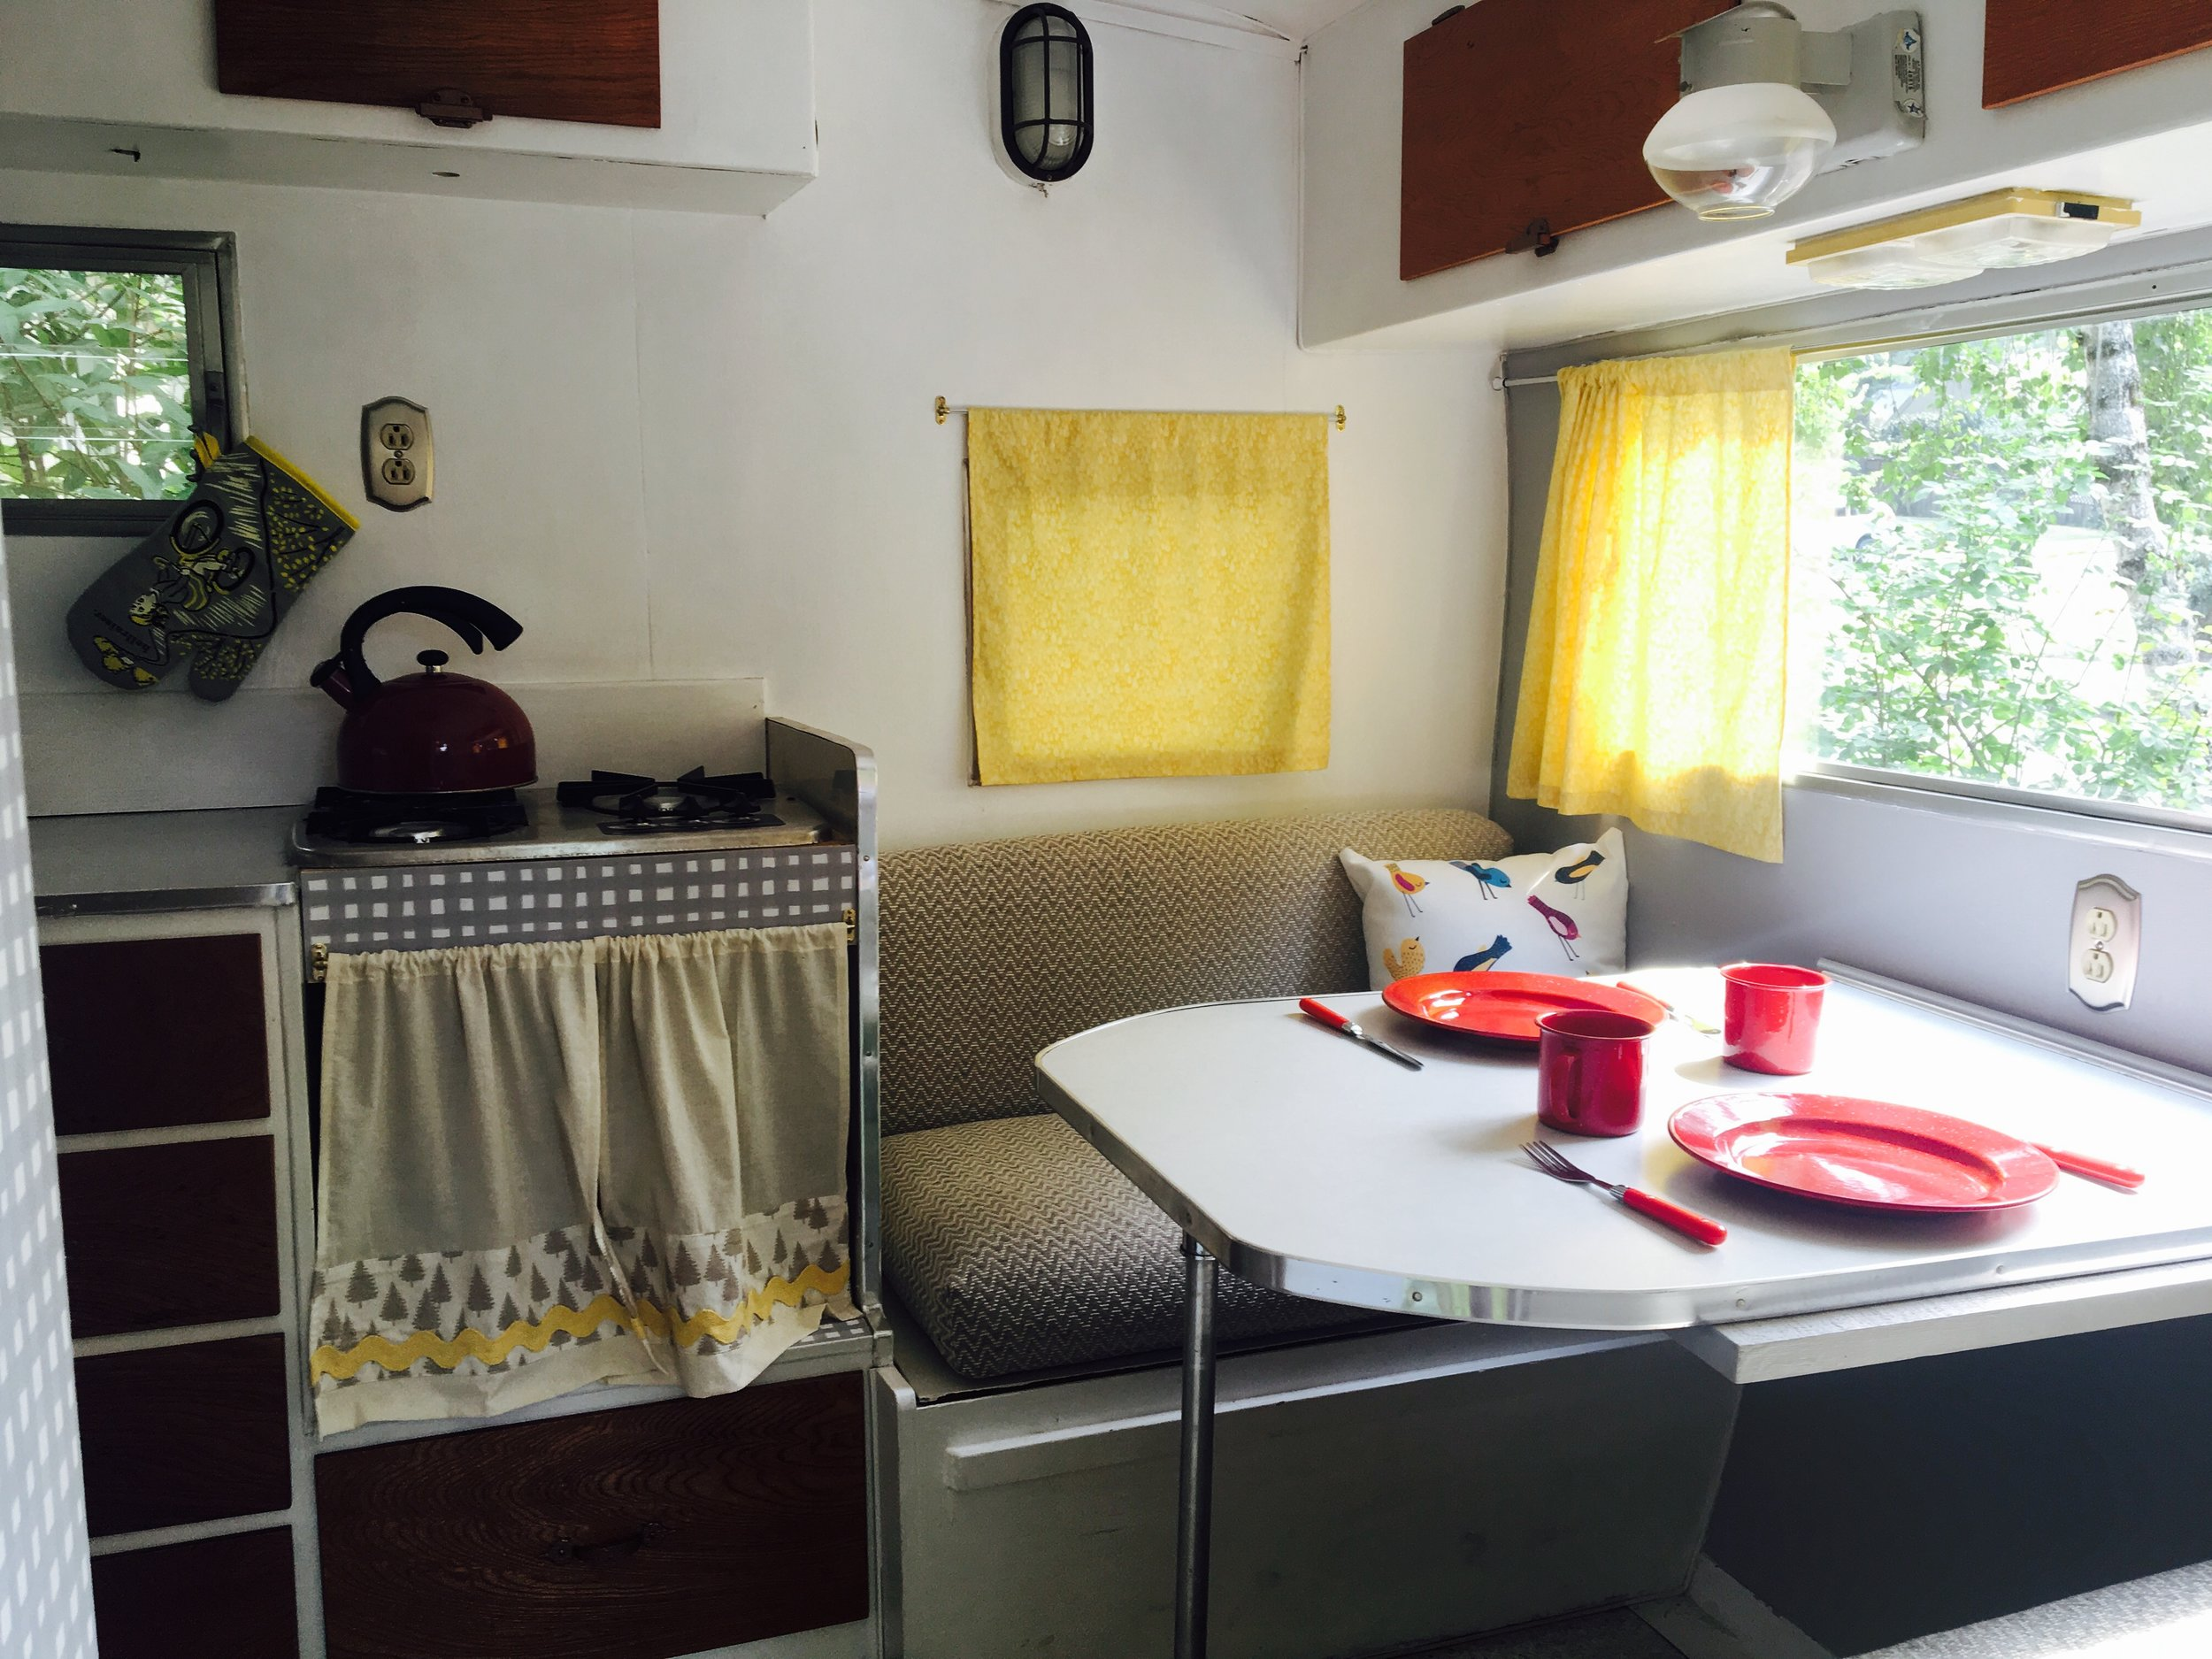 RV Rental Ameneties - -2 Beds-Propane Stove-Ice Chest-Dining Table-Dishes, pots, pans, glasses, etc.-Bed linens and pillows-Towels-2 camping chairs-Electrical hook-up and auxiliary battery-Flashlight-Sorry, no bathroom